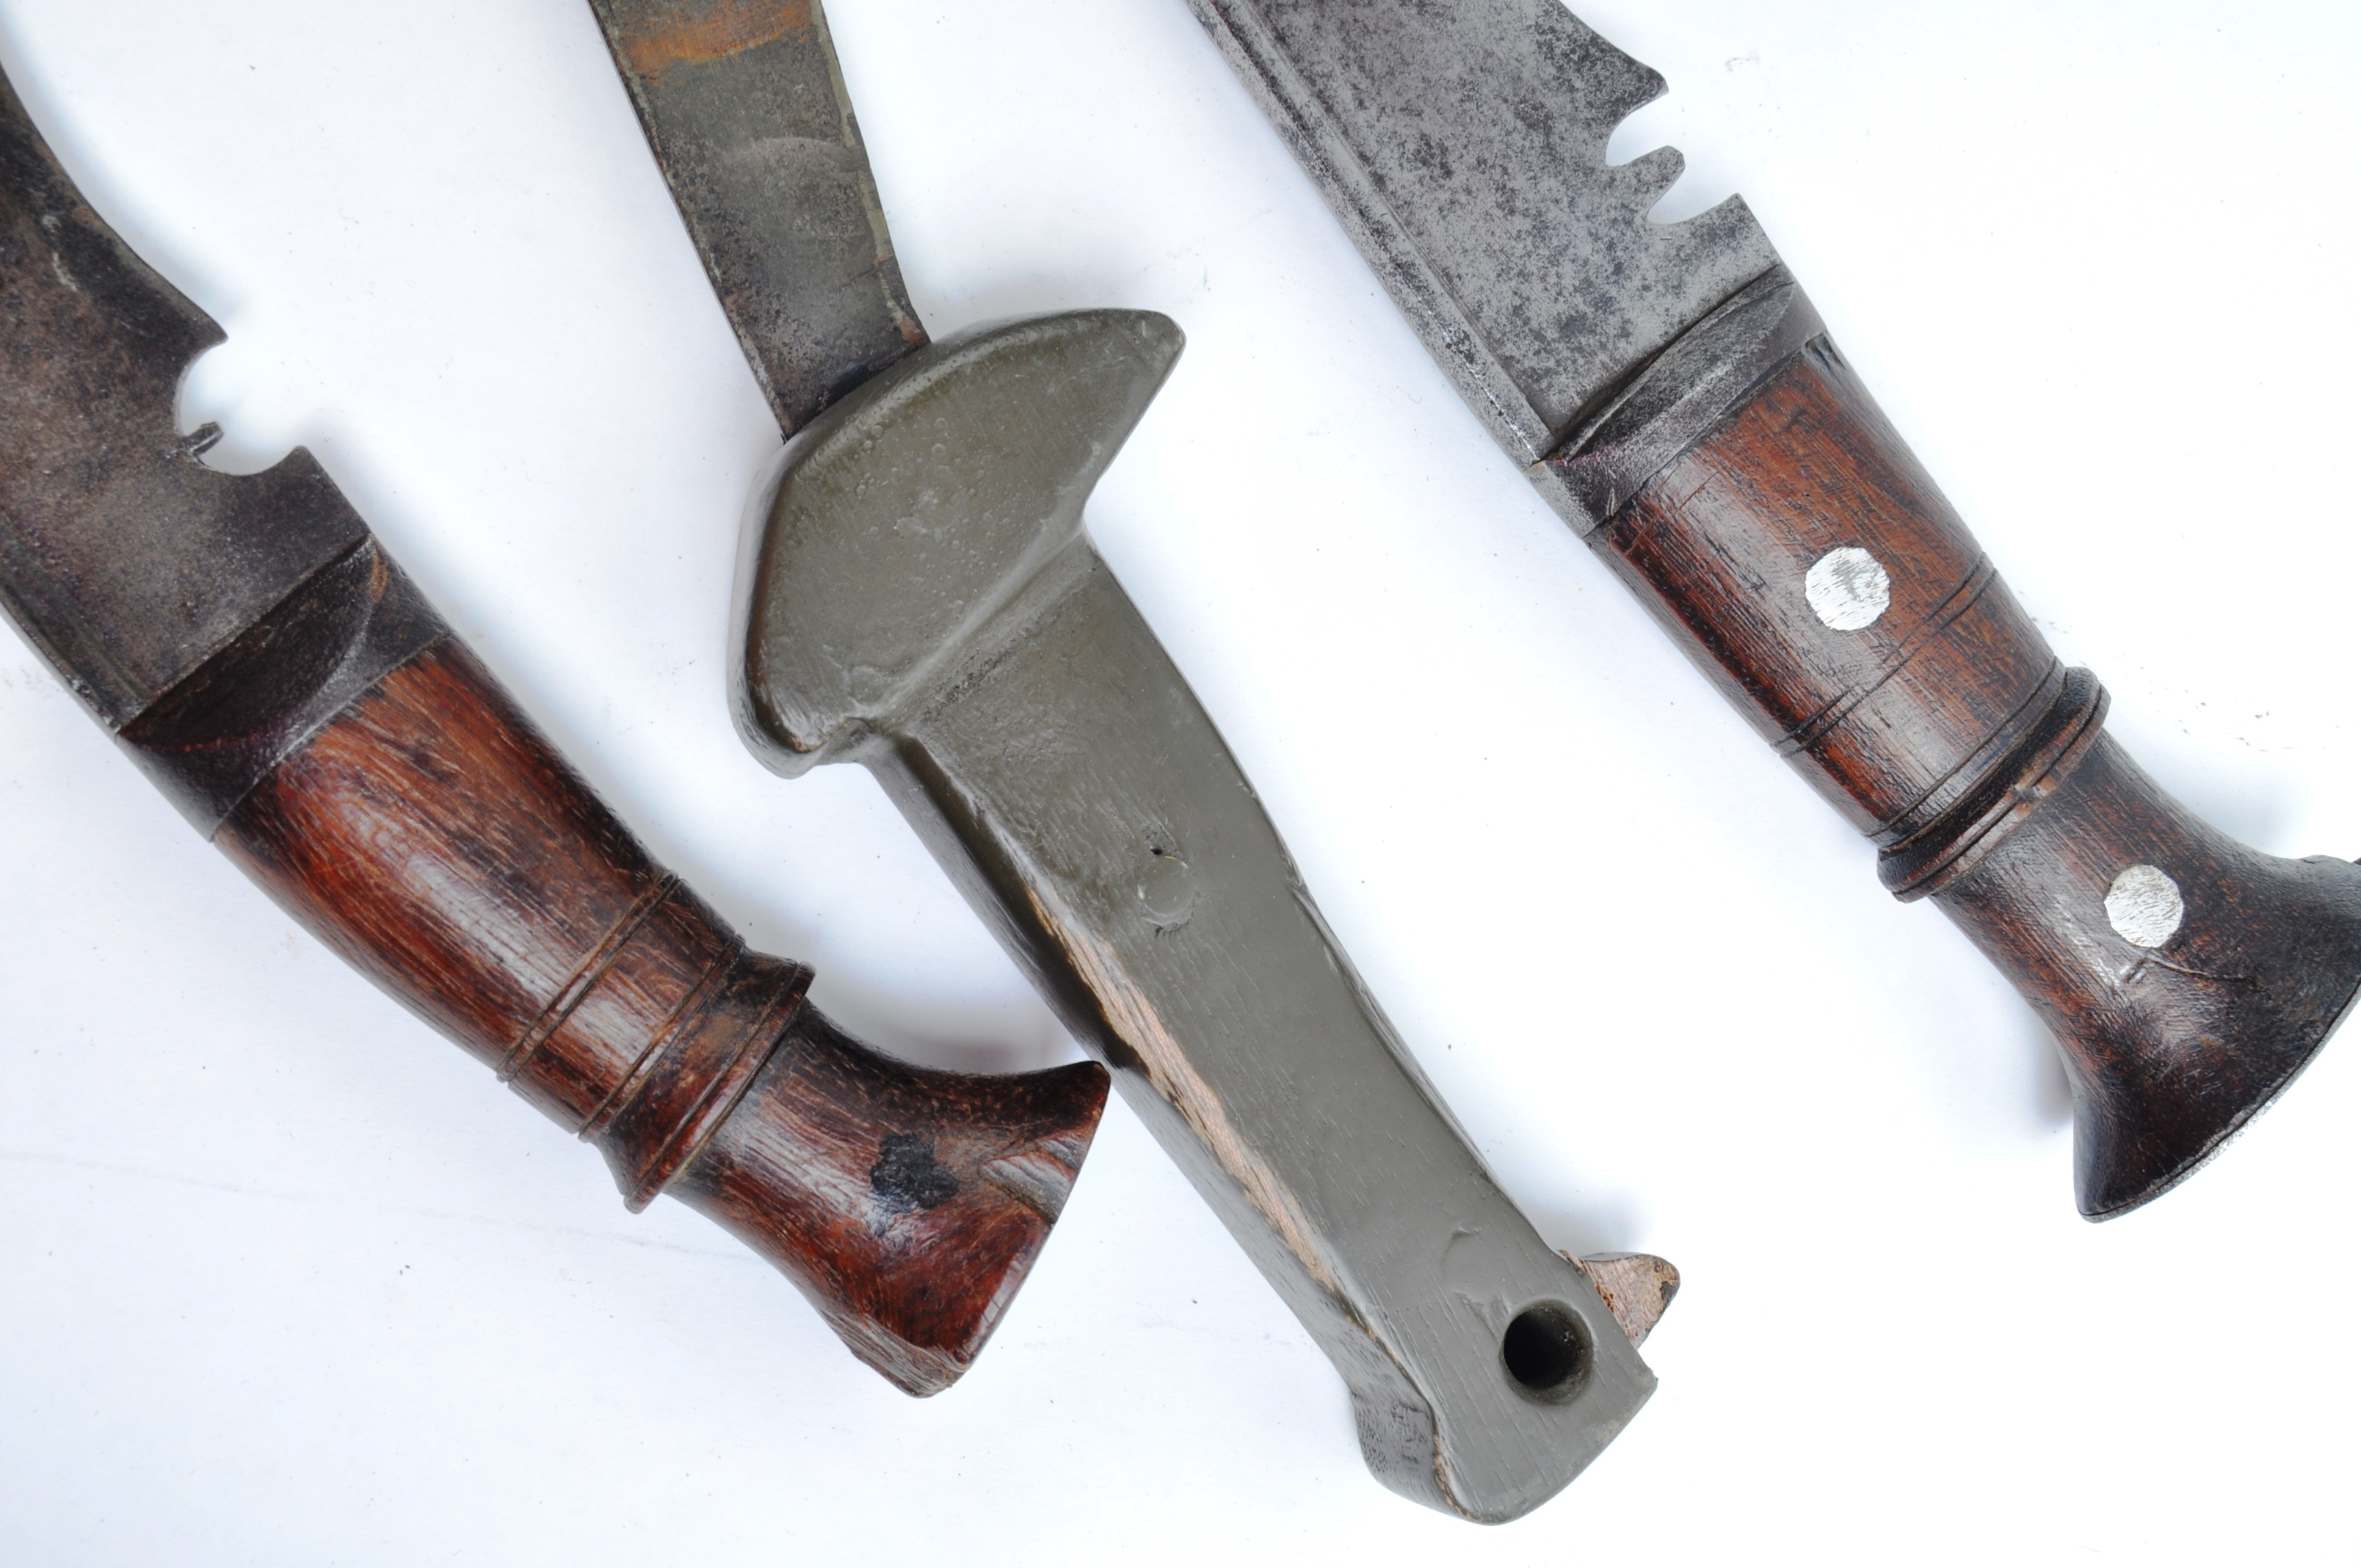 EDGED WEAPONS - COLLECTION OF KUKRI KNIVES / MACHETES - Image 11 of 11